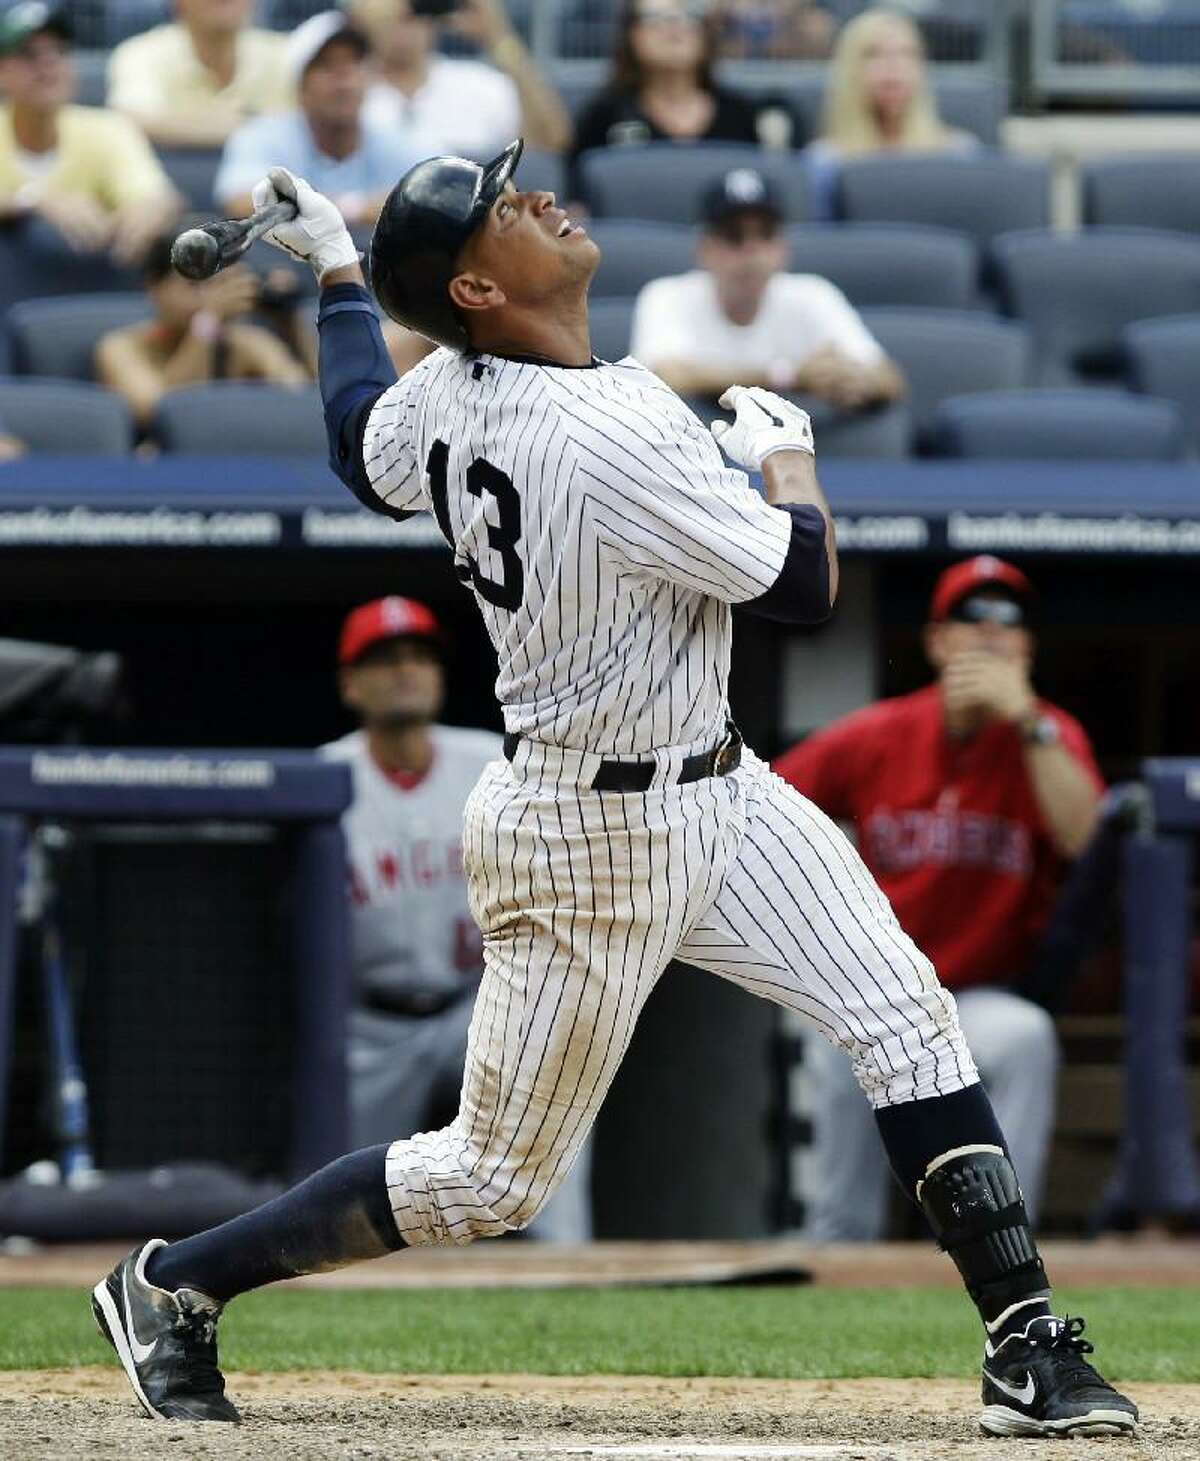 ASSOCIATED PRESS New York Yankees' Alex Rodriguez pops out with the bases loaded in the bottom of the ninth inning of the Yankees' 10-8 loss to the Los Angeles Angels on Sunday at Yankee Stadium in New York.